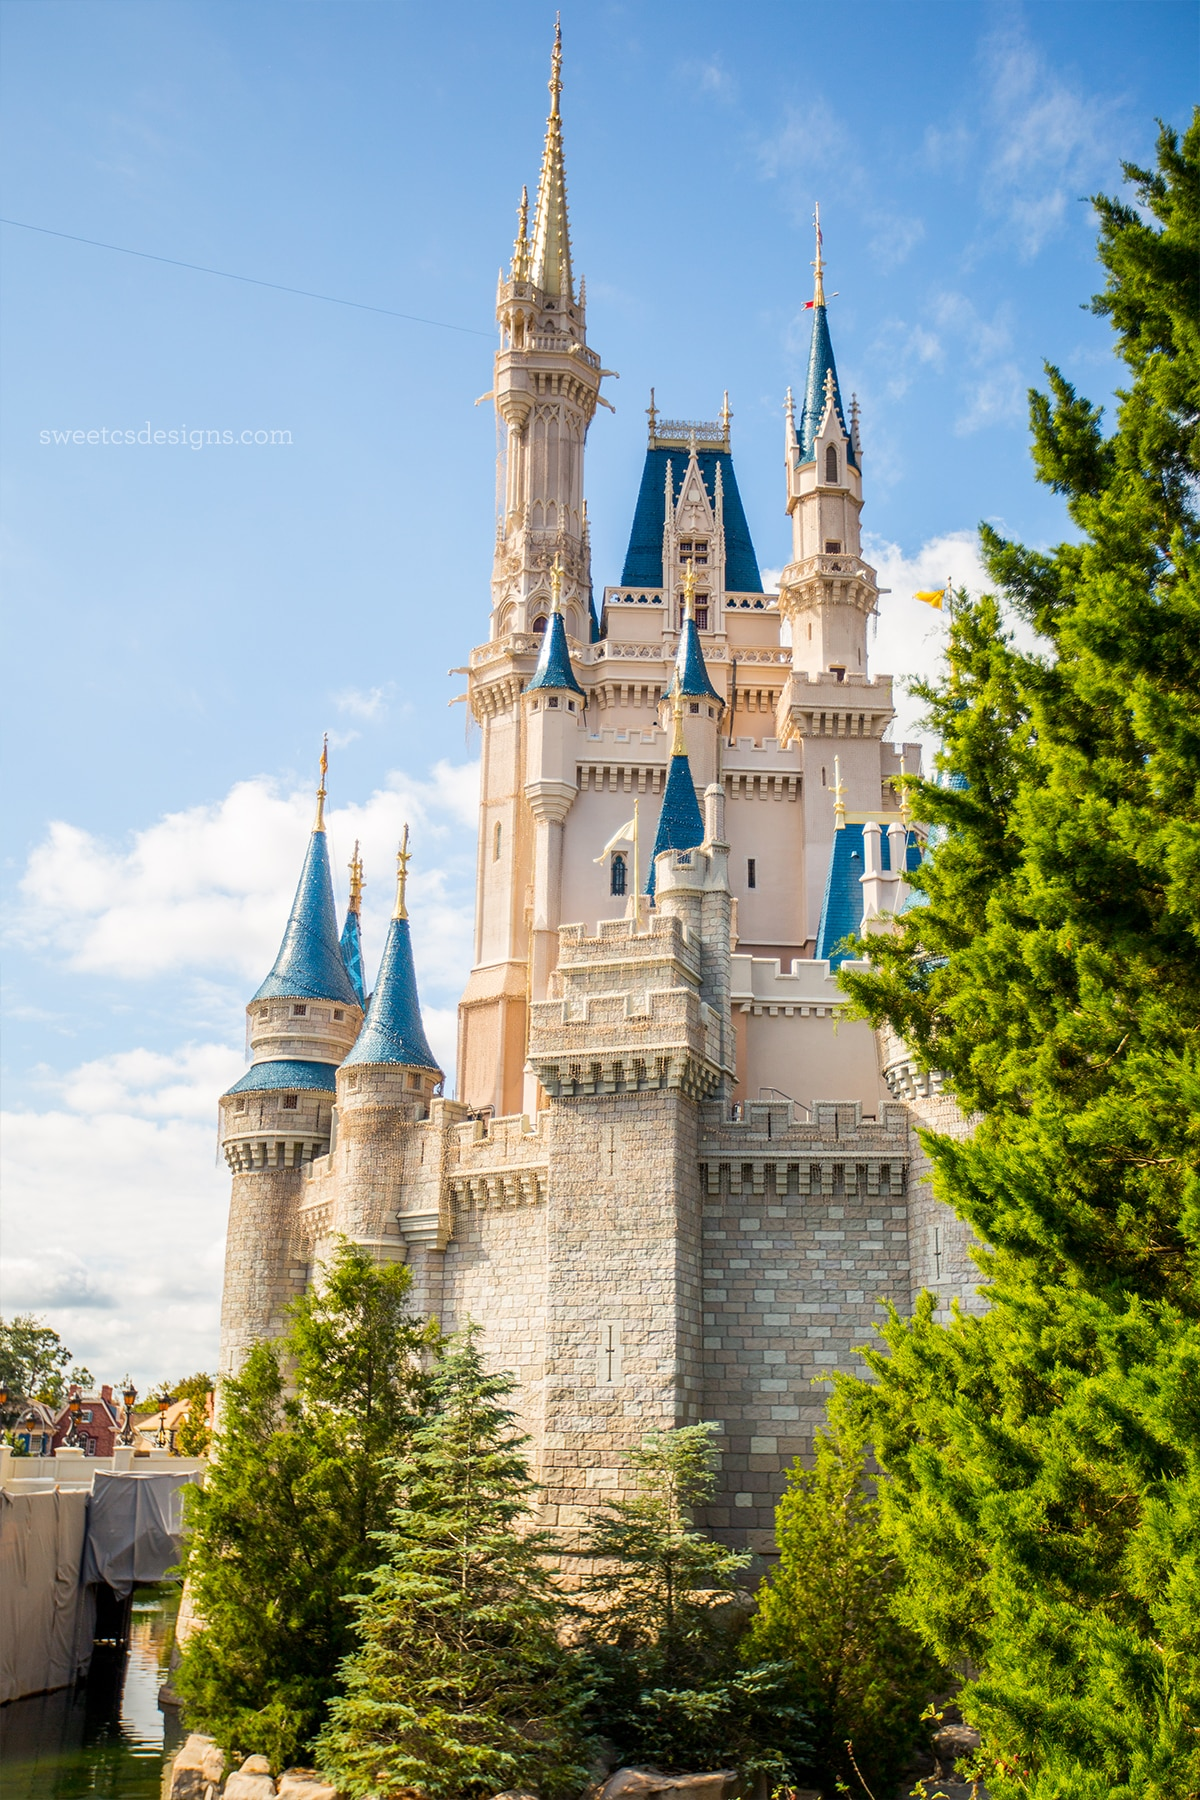 Disney world - I love the castle!